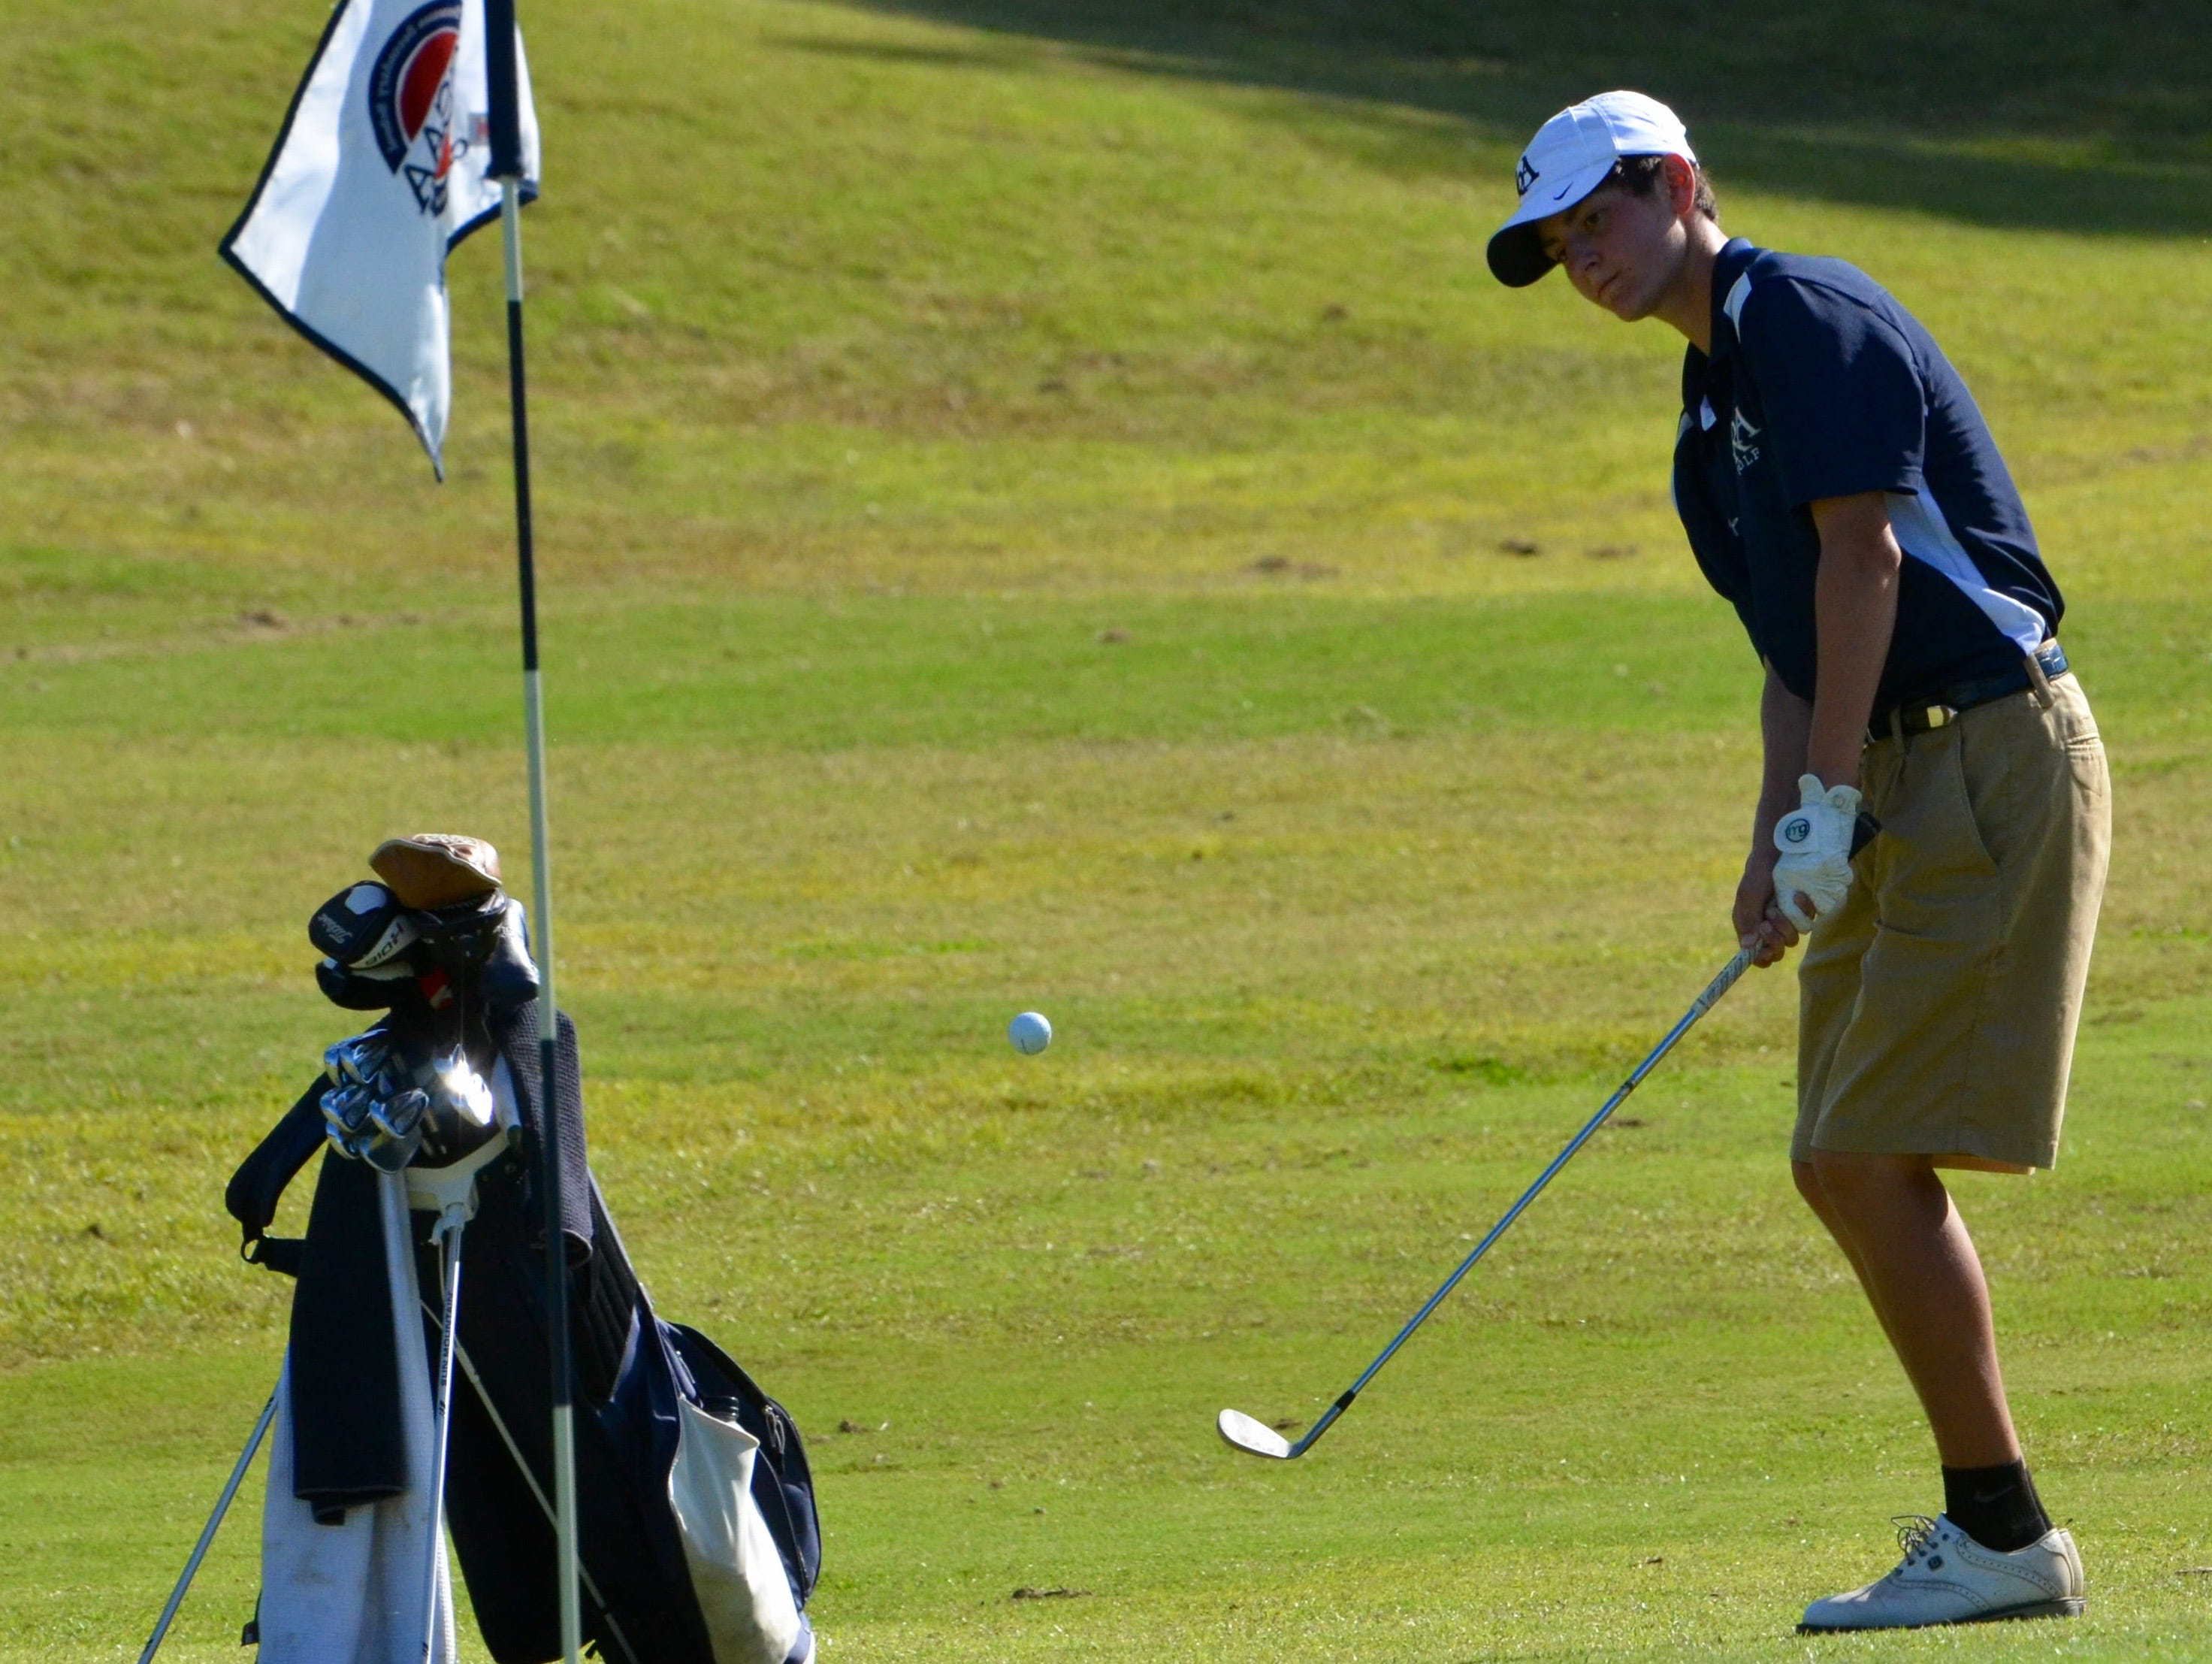 Franklin Road Academy sophomore Josh Holtschlag placed ninth in the Division II-A State Tournament last season.